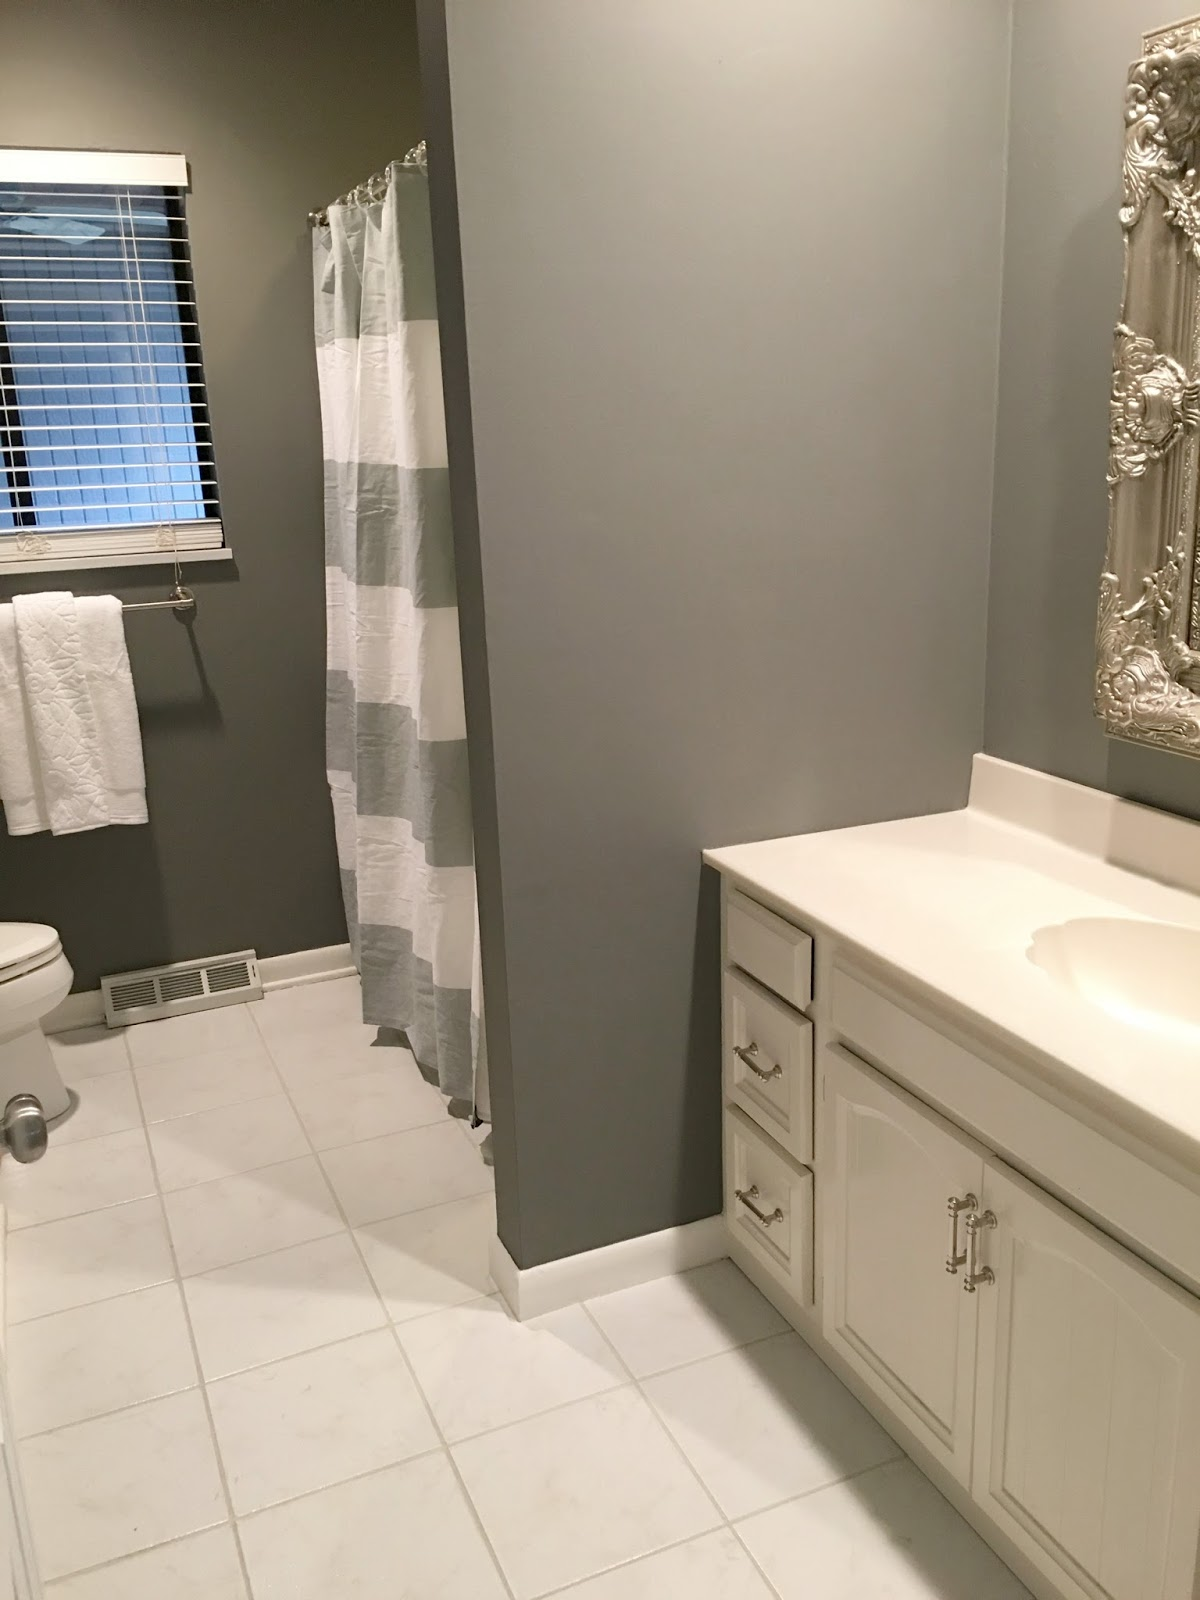 Ideal DIY Bathroom Remodel on a Budget